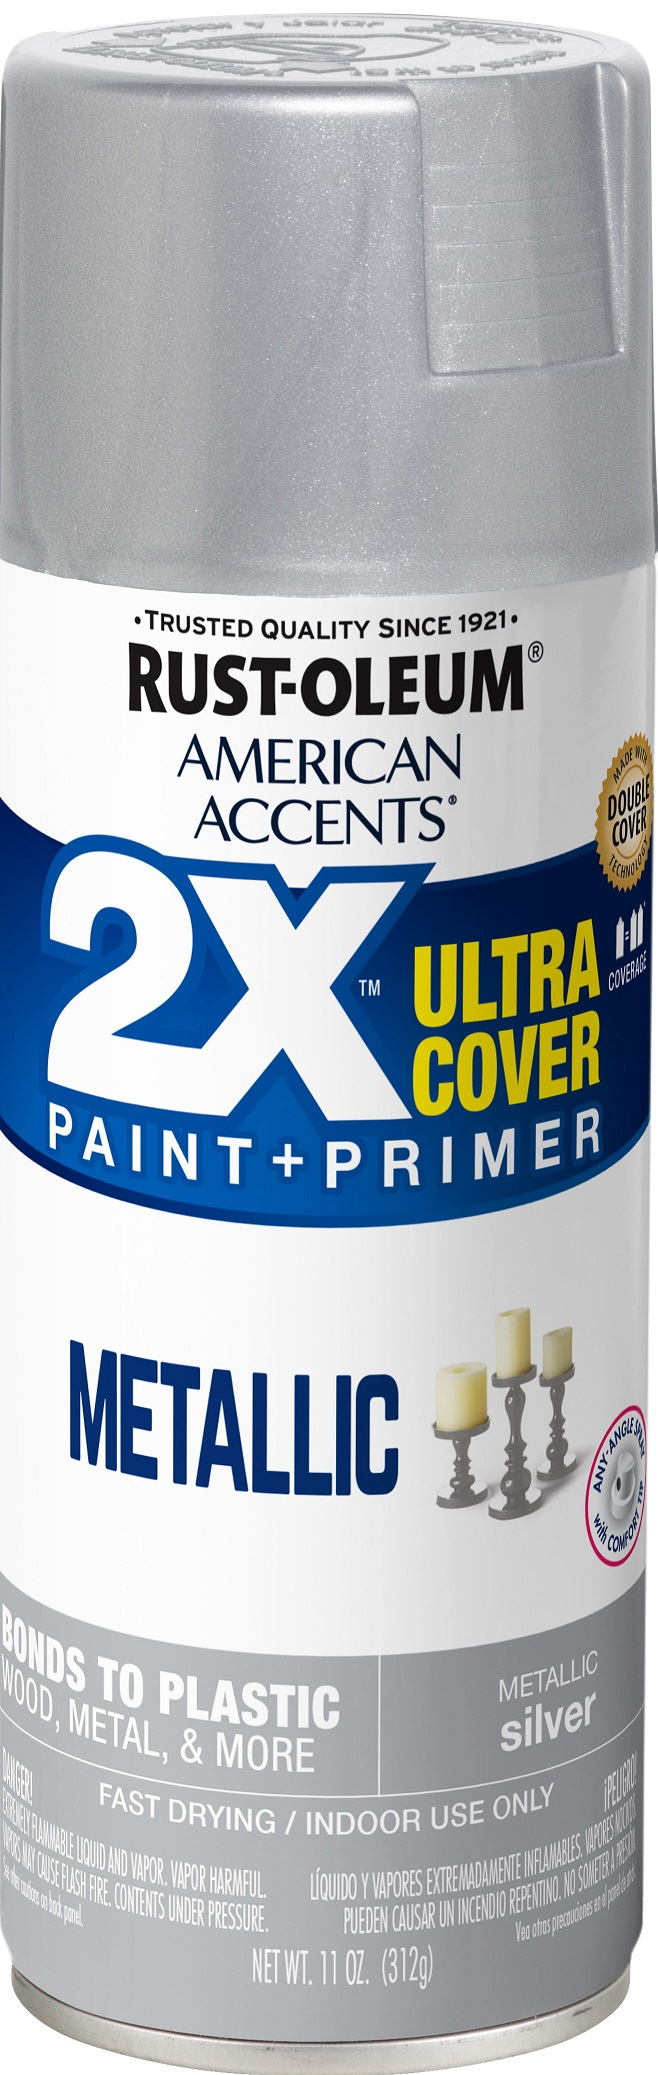 (3 Pack) Rust-Oleum American Accents Ultra Cover 2X Metallic Silver Spray Paint and Primer in 1, 11 oz